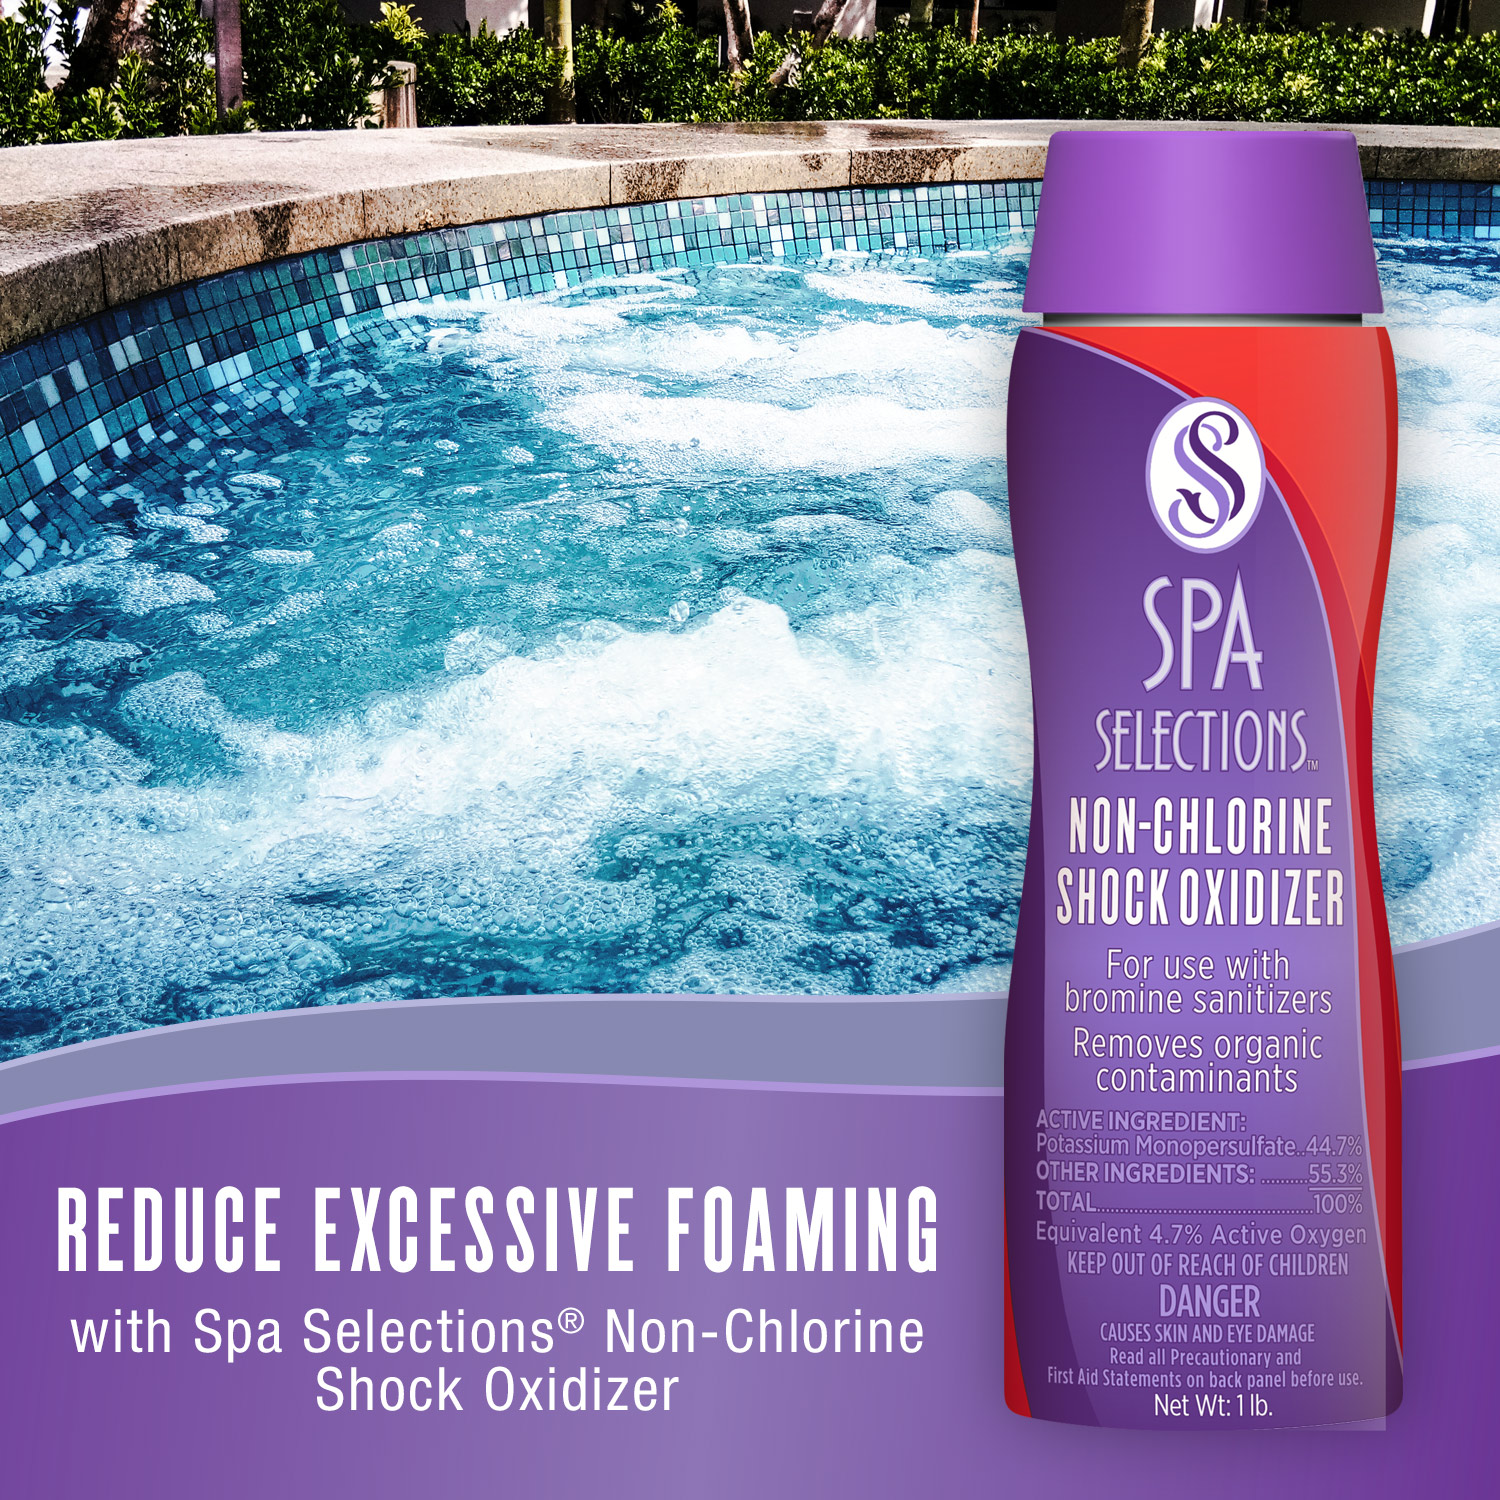 Photo of outdoor spa. Reduce excessive foaming with Spa Selections non-chlorine shock oxidizer.